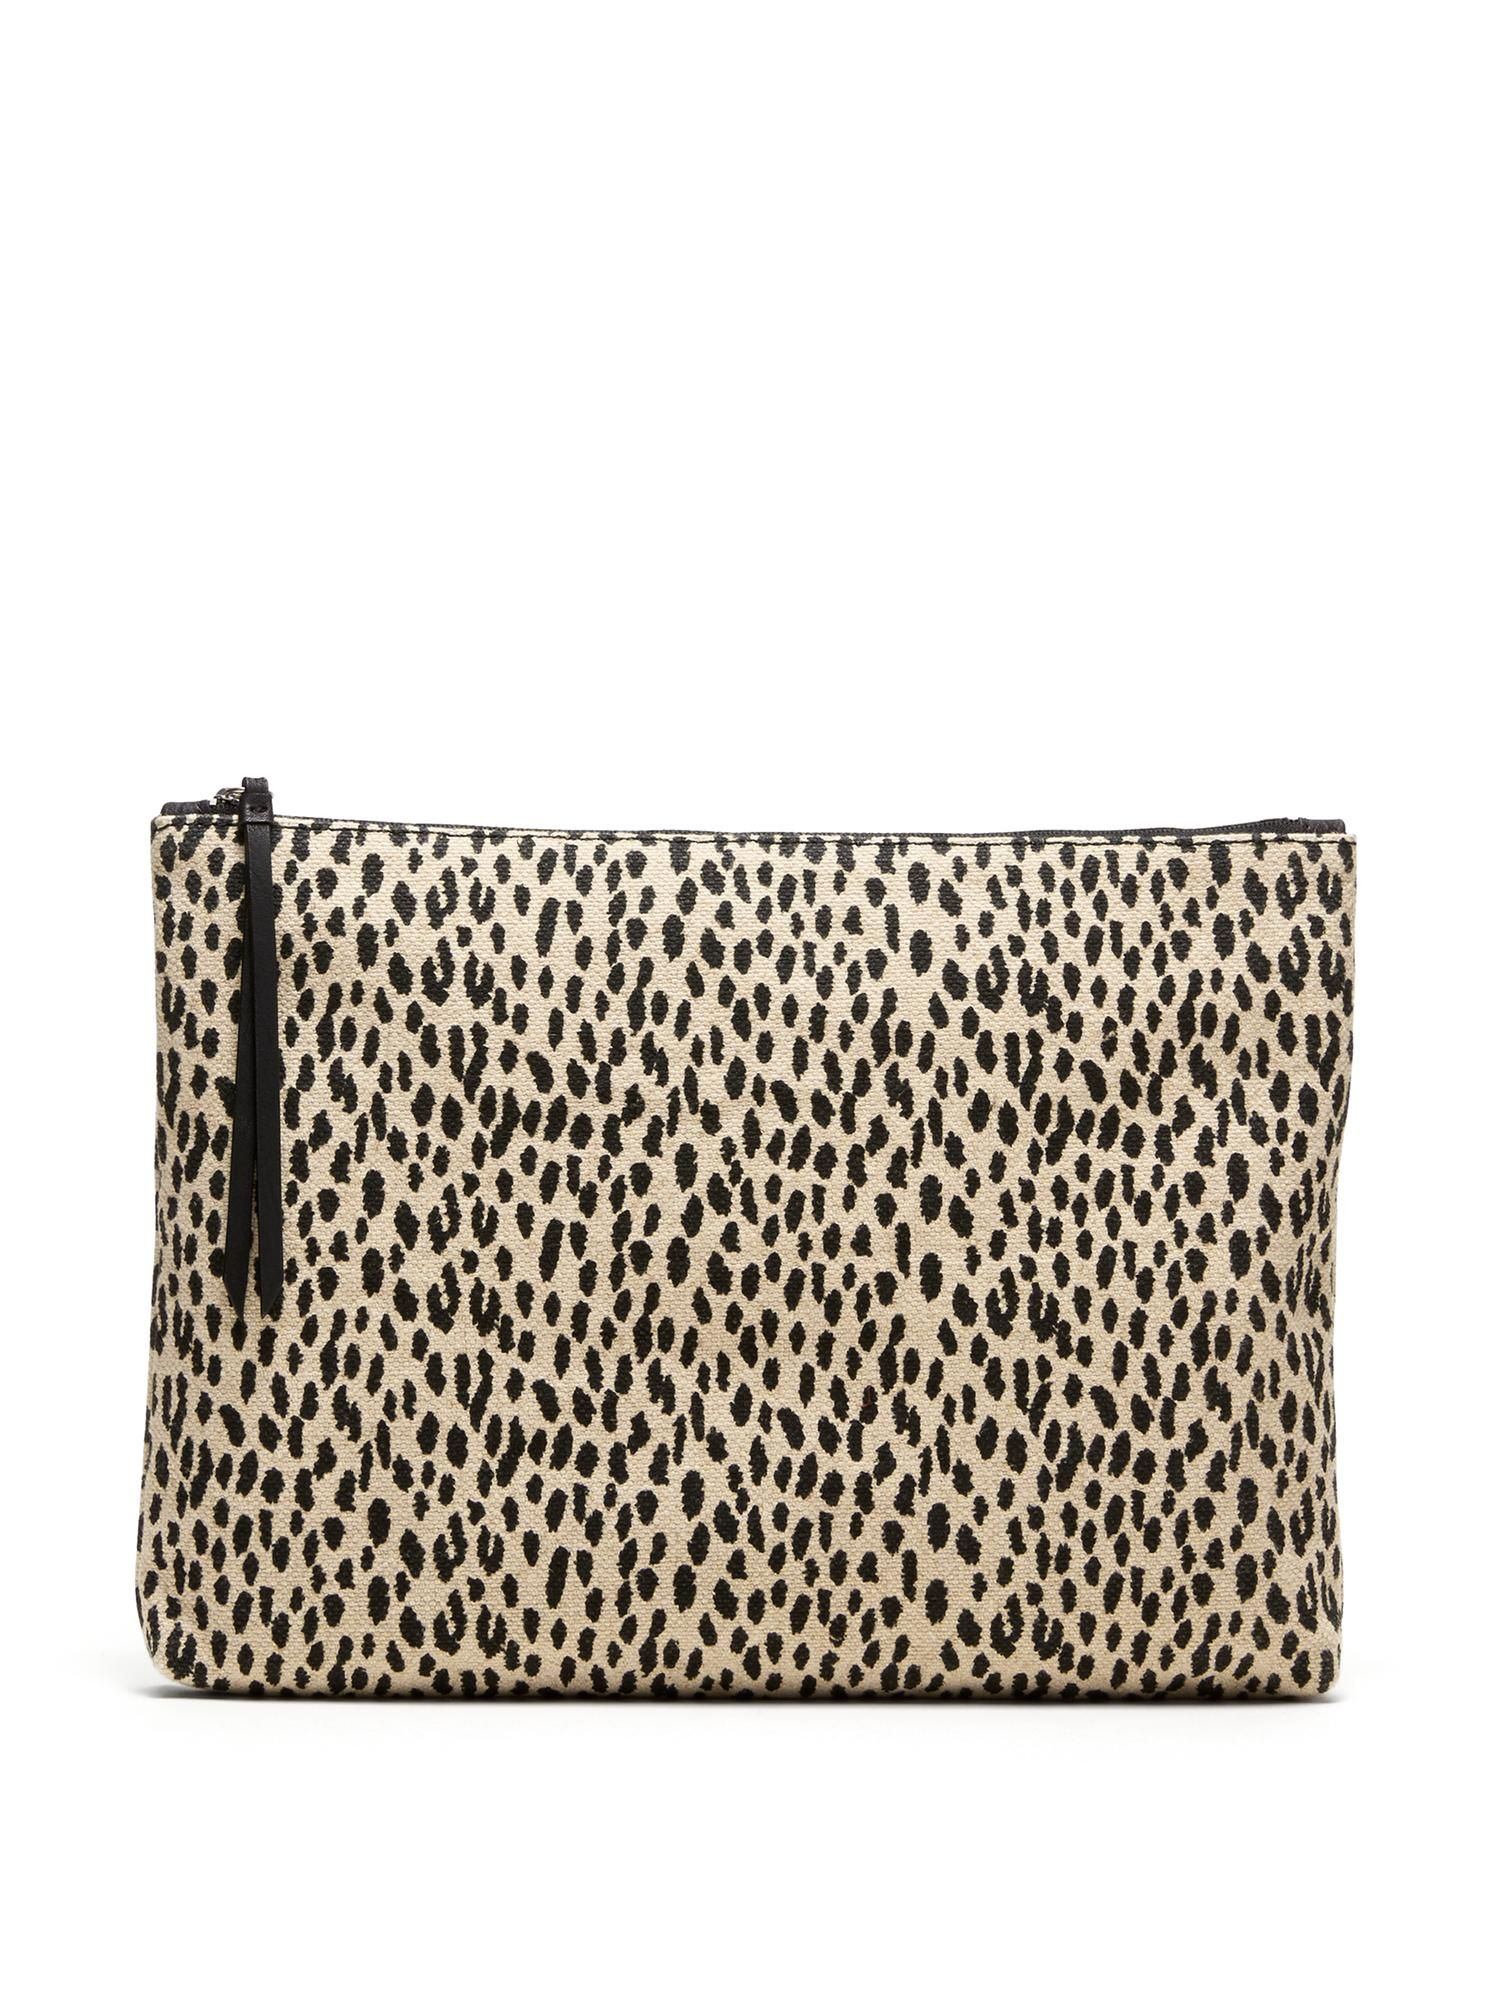 Women s Jewelry   Accessories  shop all handbags. Large Animal Print Zip  Pouch  e387ff3ddd0ac